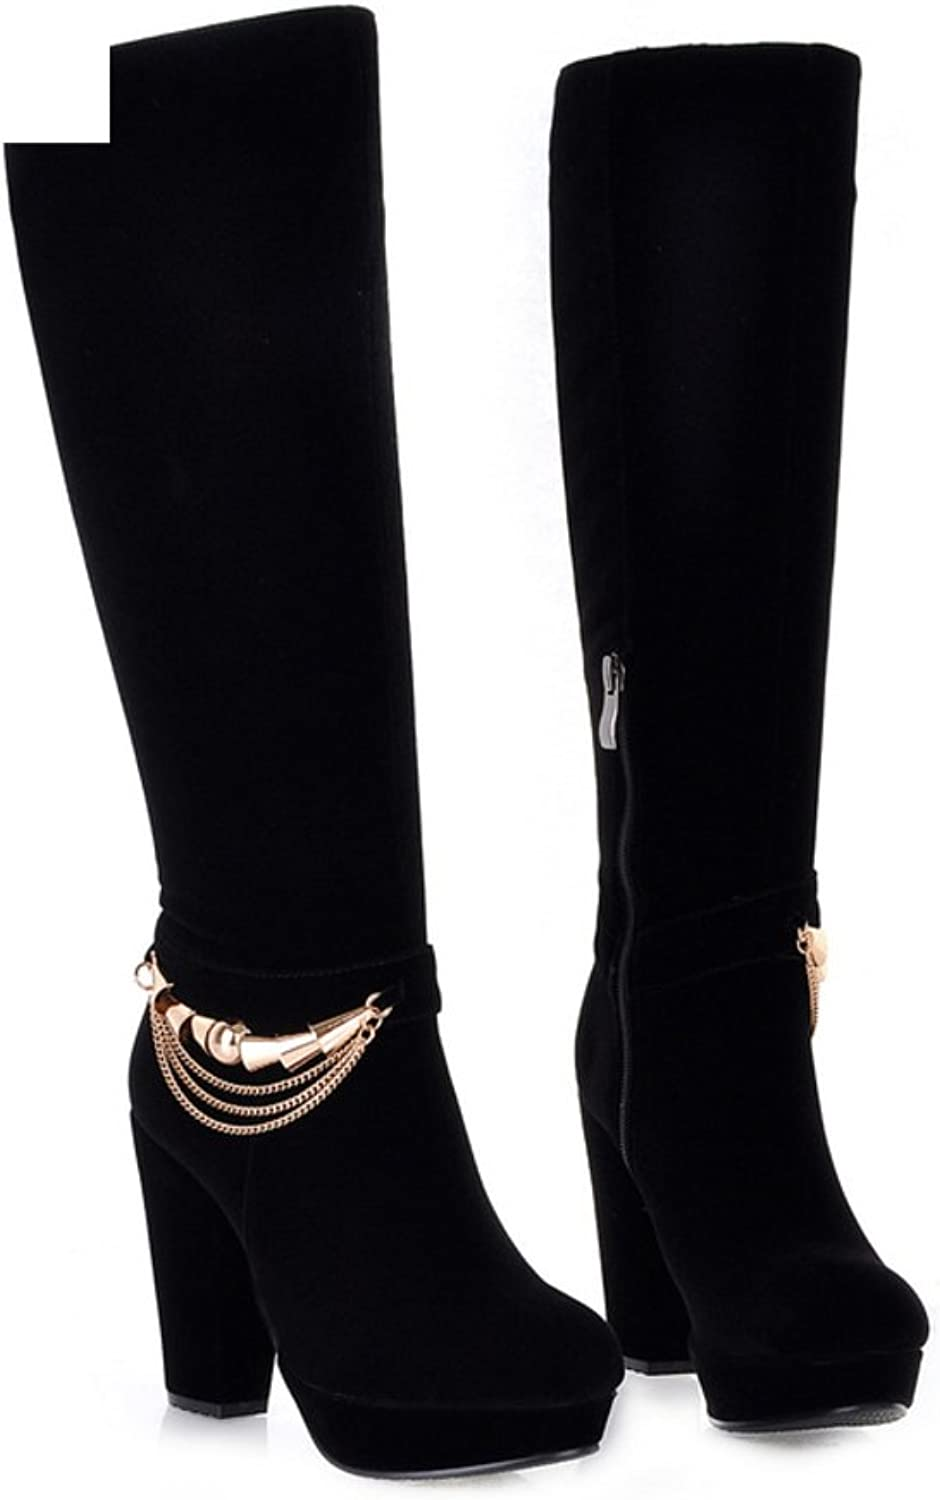 RHFDVGDS Rough in autumn and winter with thick-soled boots high heel high boots metal boots Cavalier knee boots